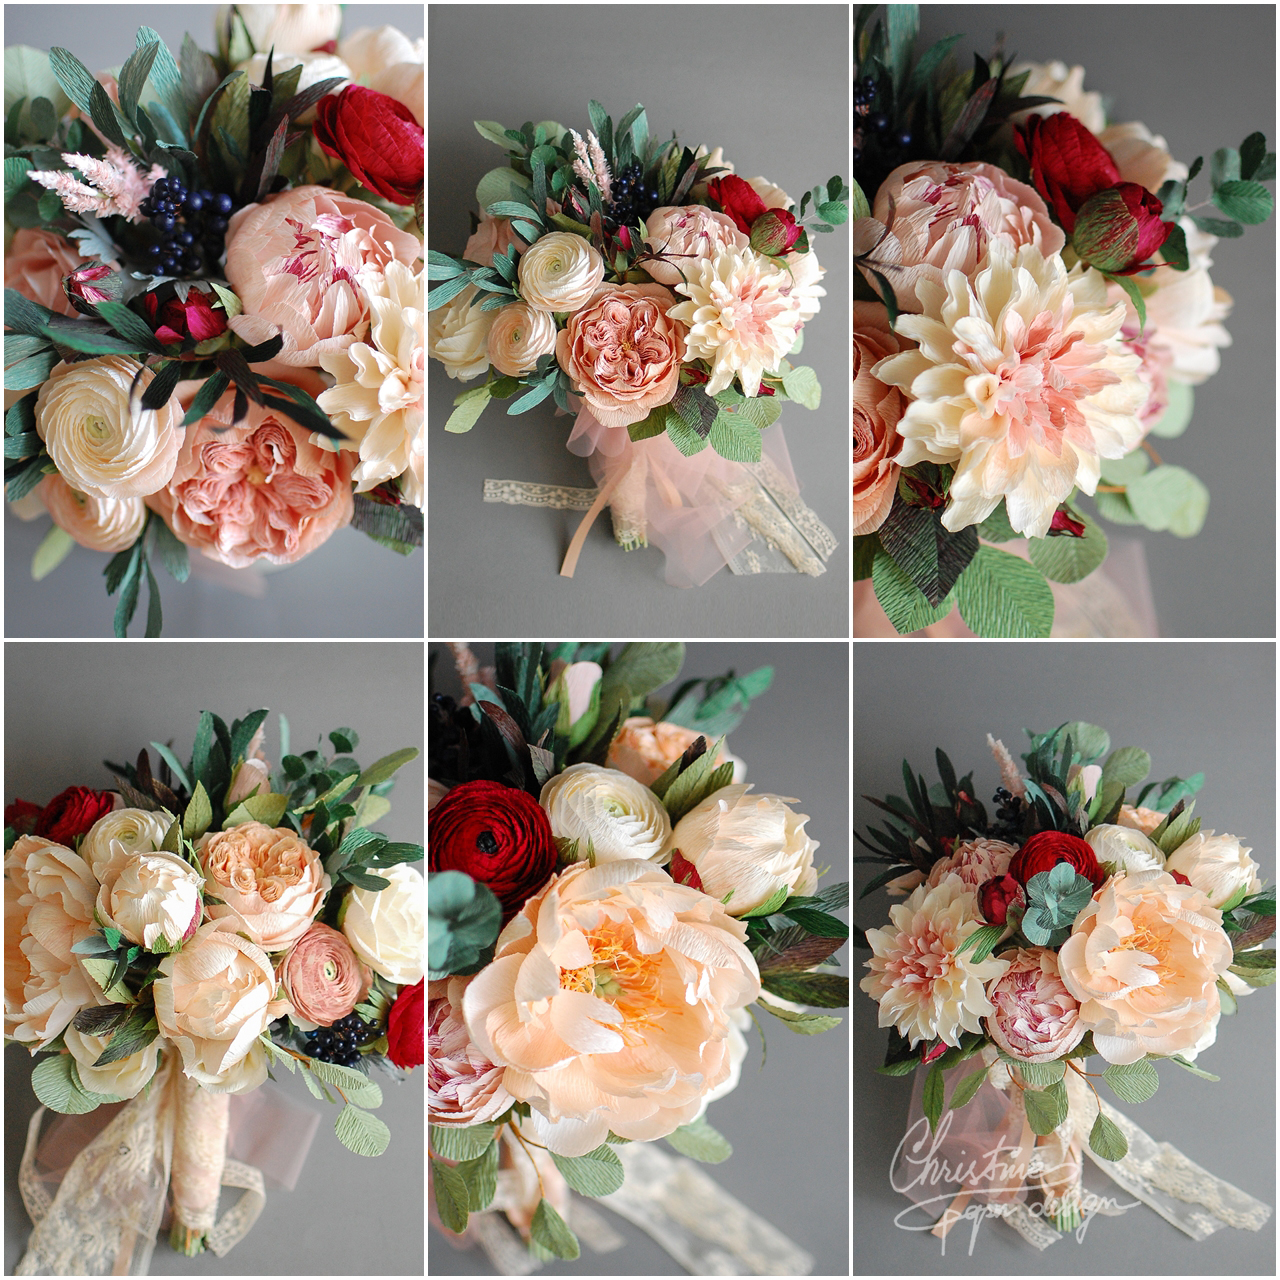 paperflowers bridal bouquet - Christinepaperdesign